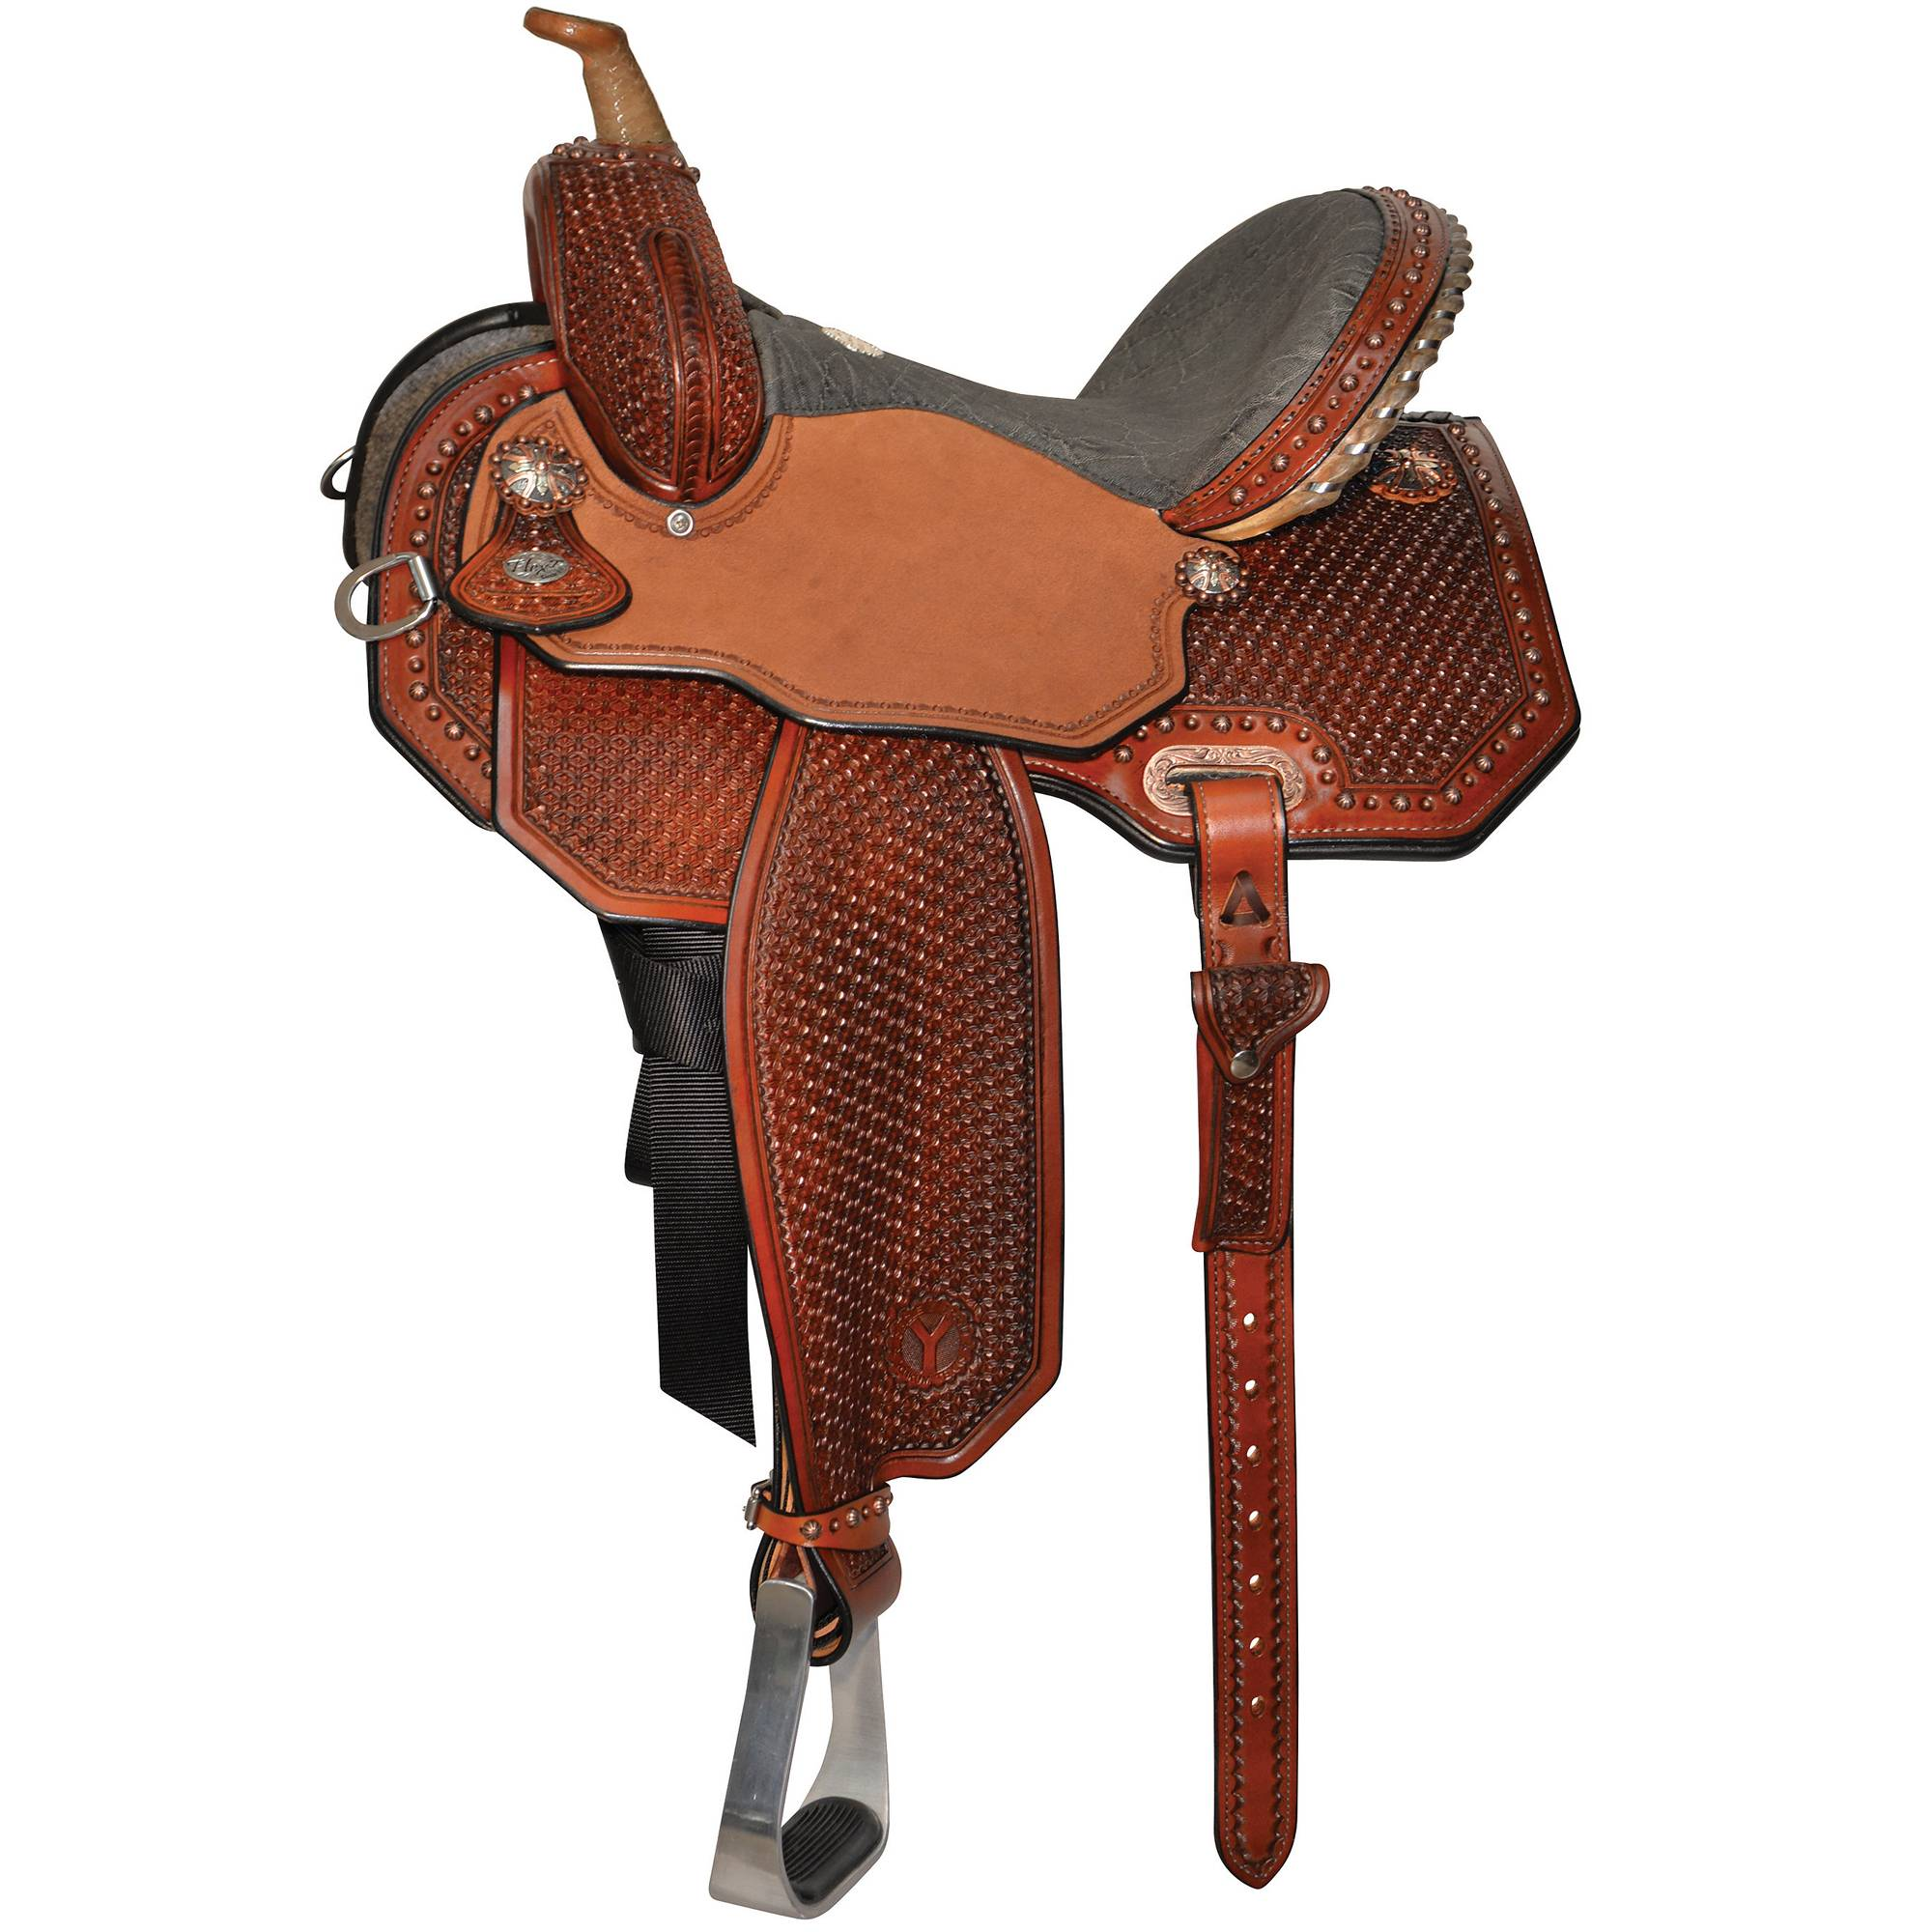 Circle Y Lisa Lockhart Flex2 Barrel Saddle